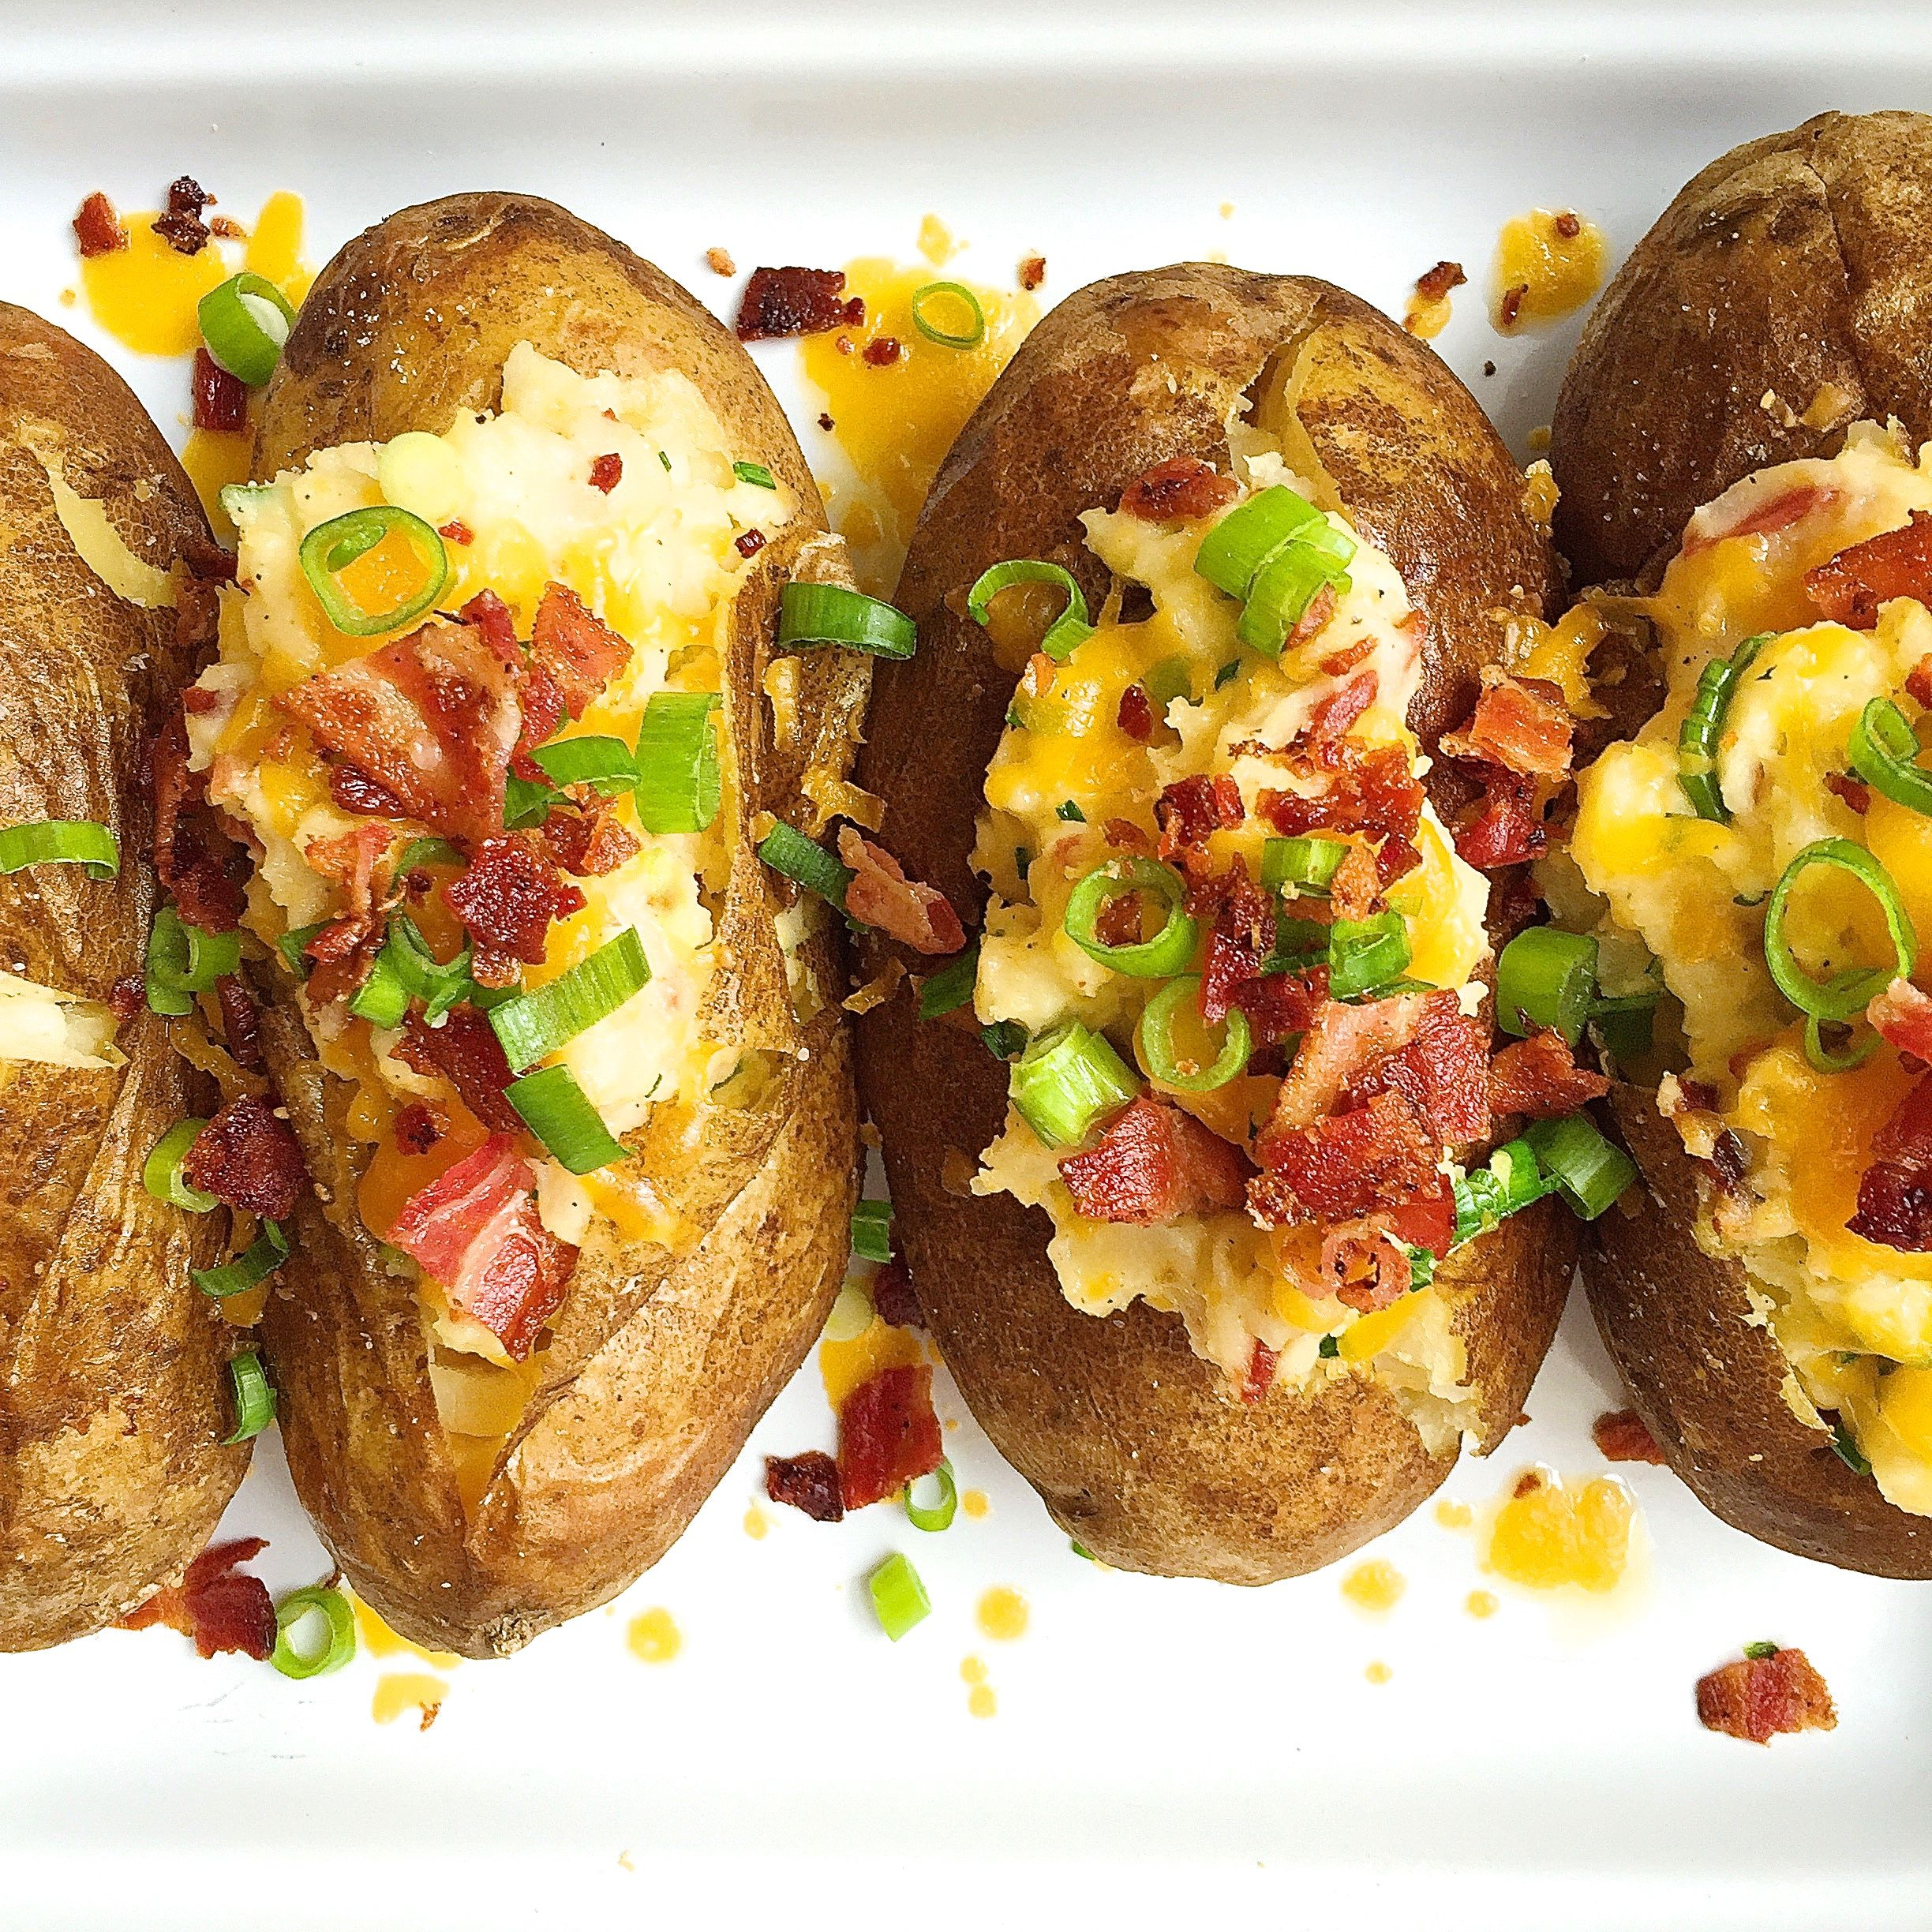 Best Loaded Baked Potatoes With Bacon And Cheddar Recipe How To Make Loaded Baked Potatoes With Bacon And Cheddar Delish Com